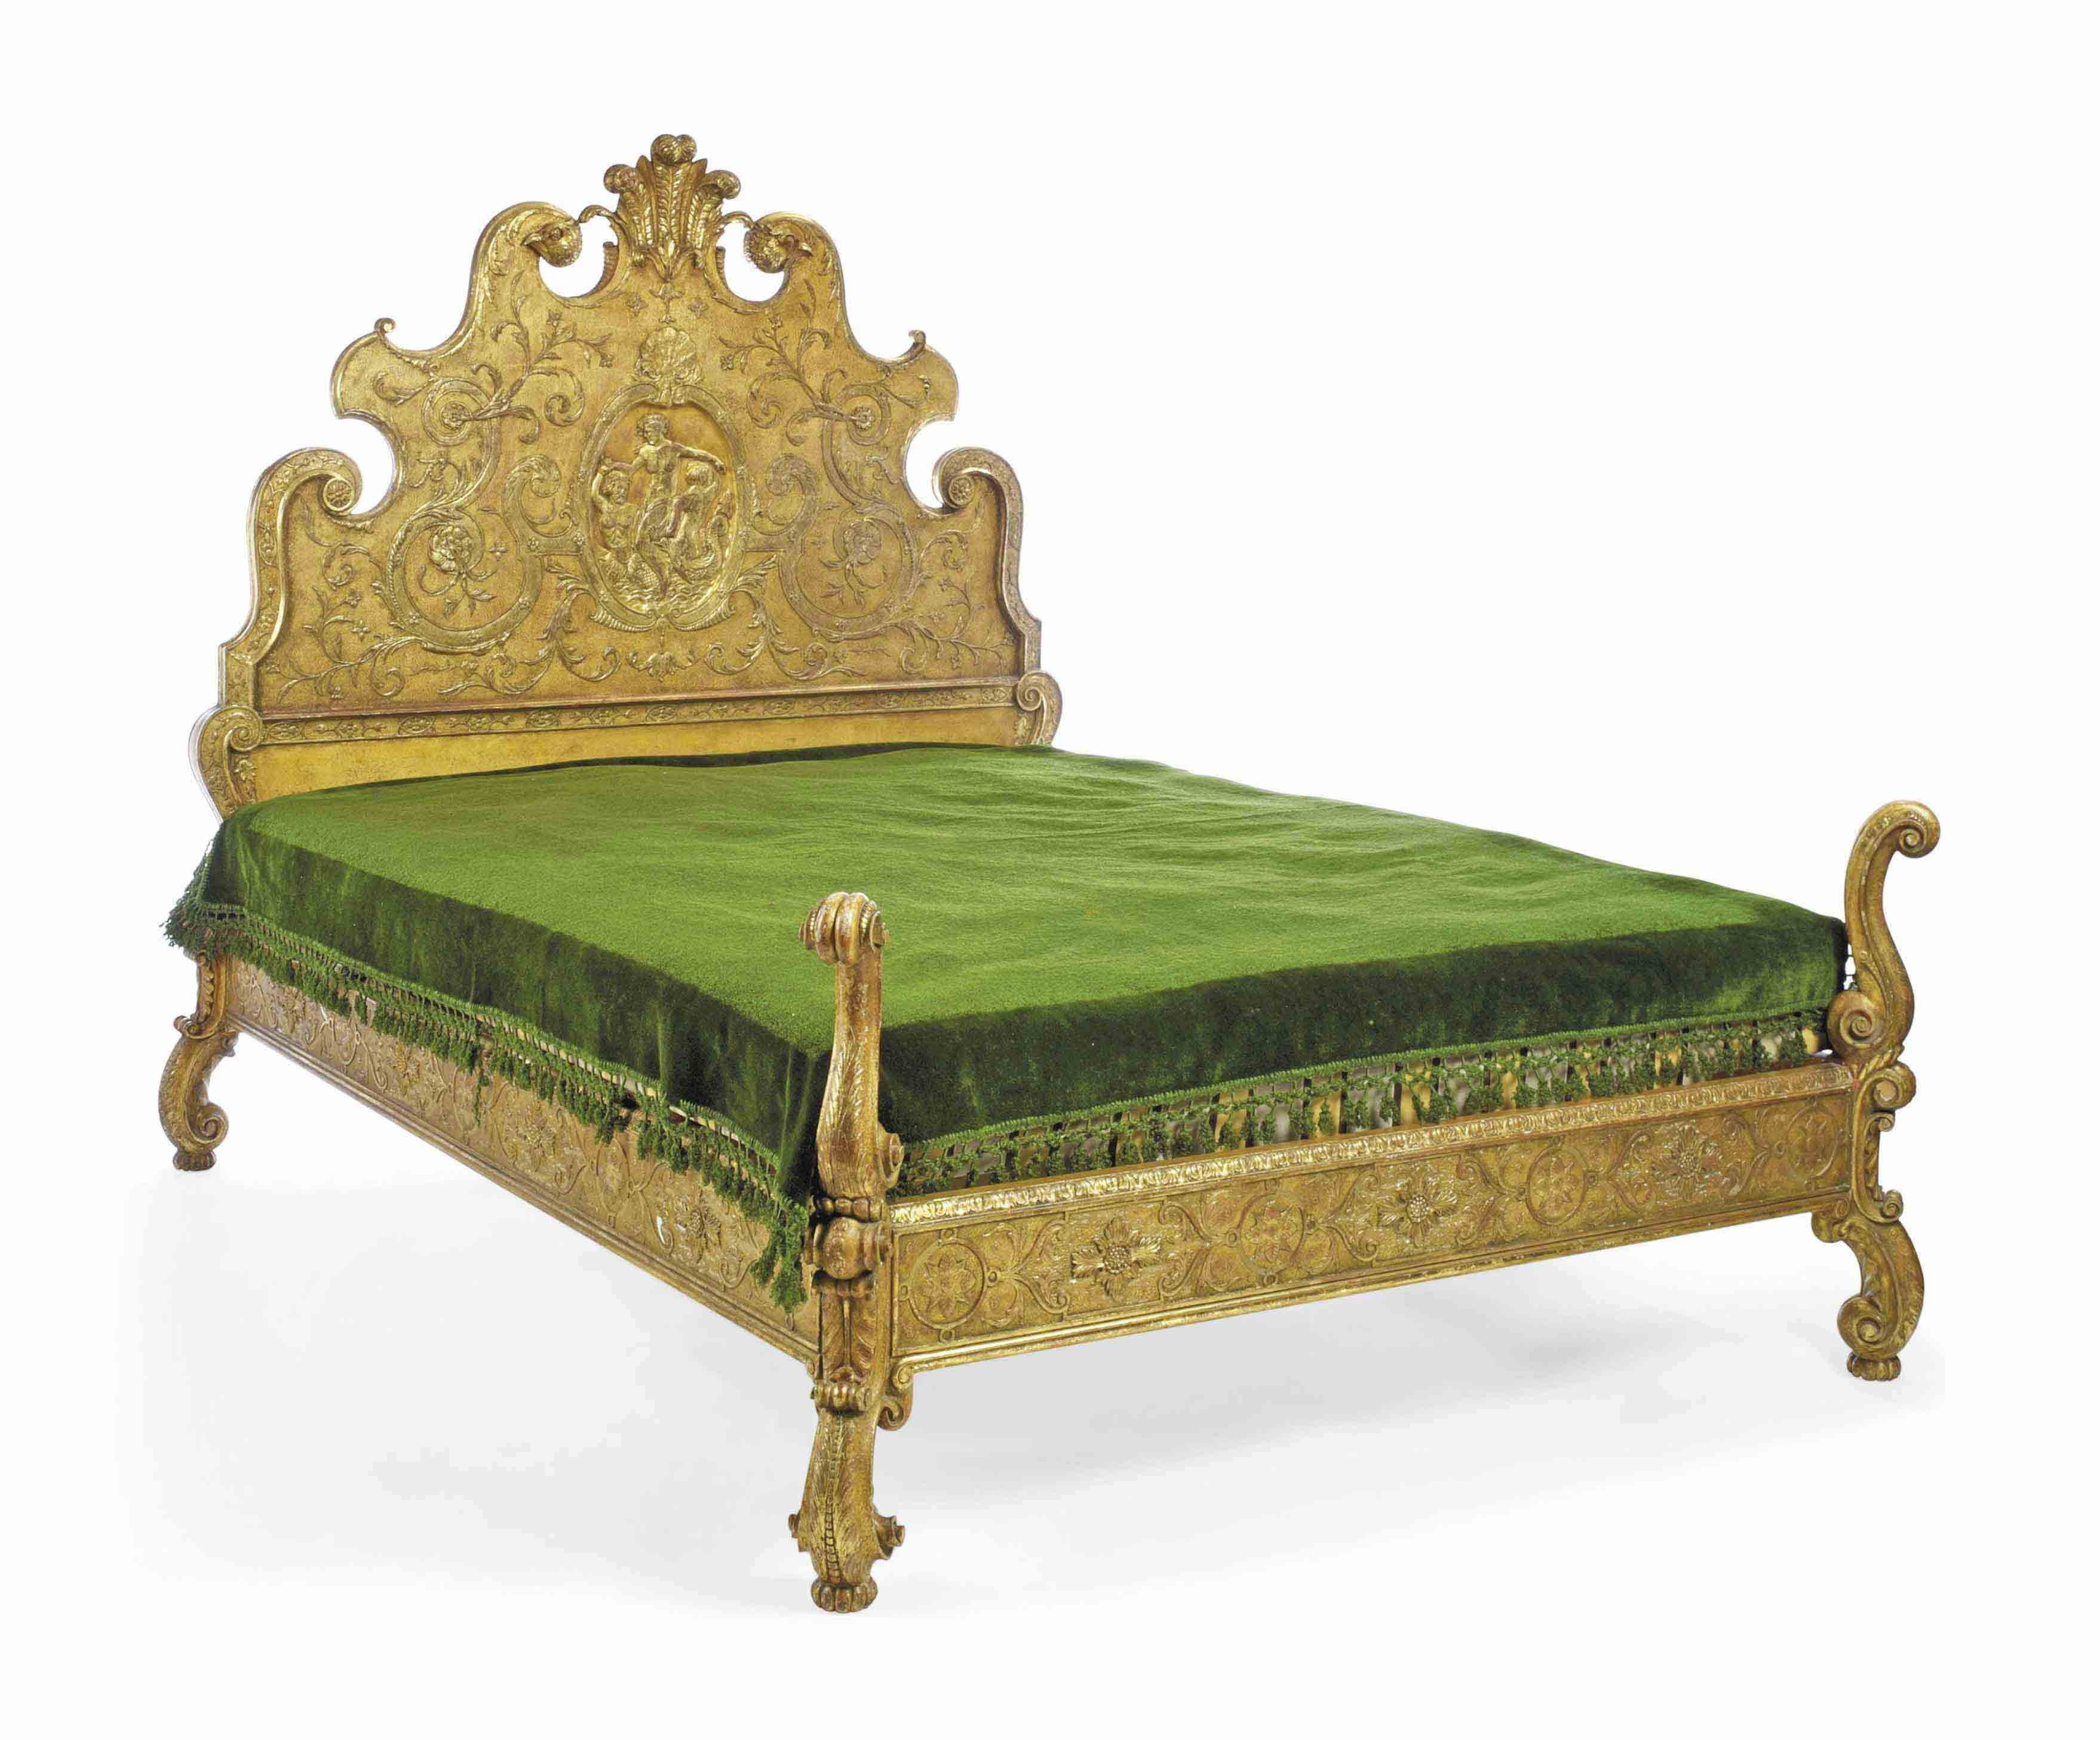 A GEORGE I STYLE GILTWOOD AND GESSO BED